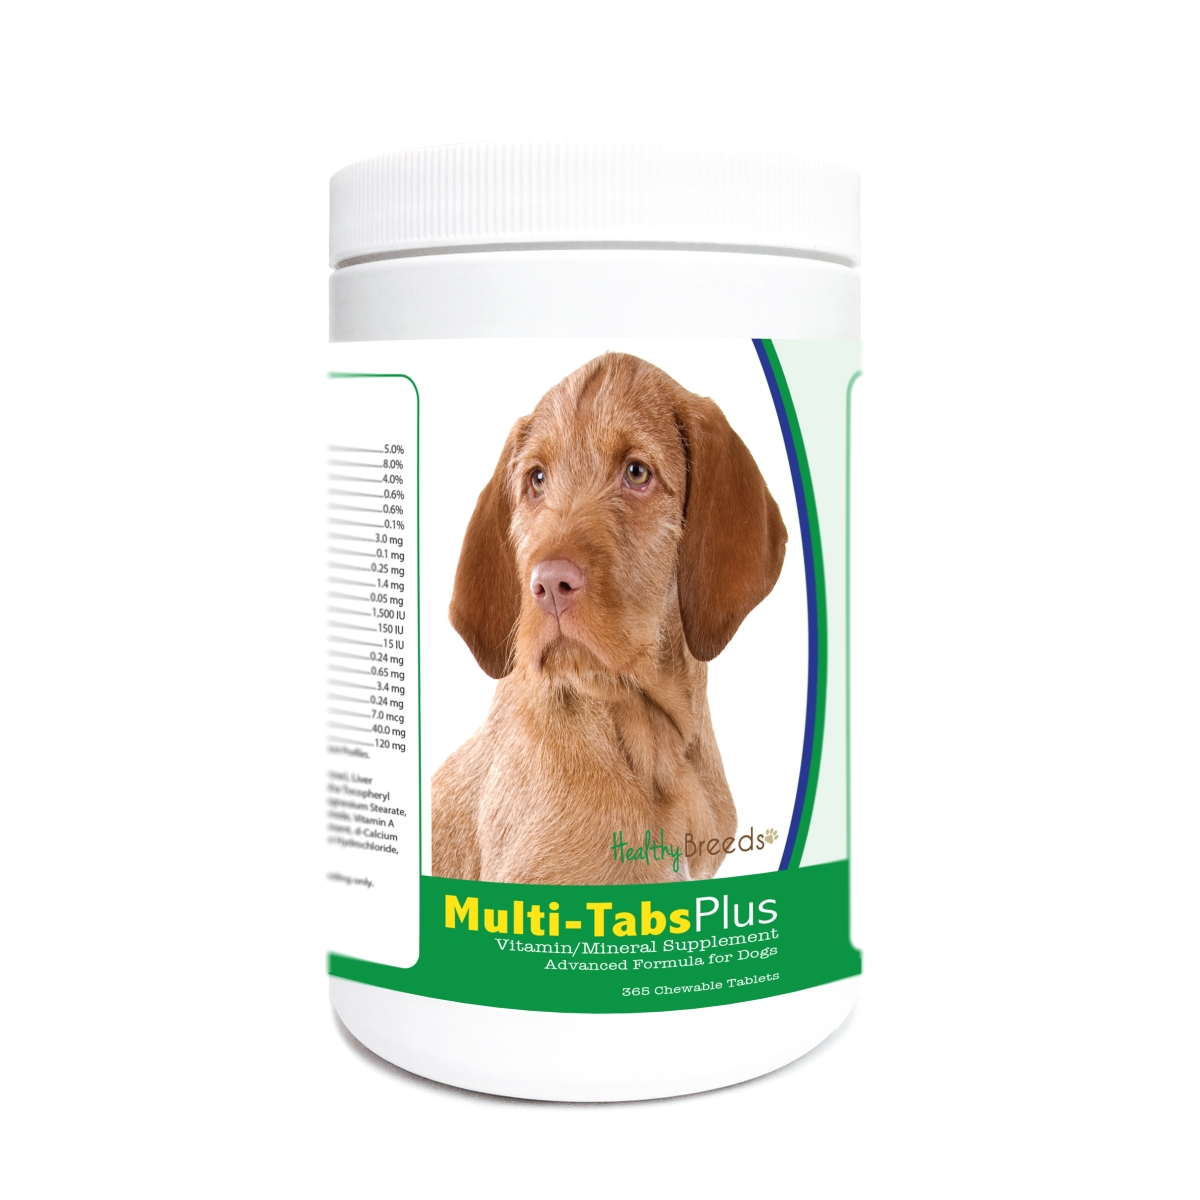 Healthy Breeds 840235172451 Wirehaired Vizsla Multi-Tabs Plus Chewable Tablets - 365 Count